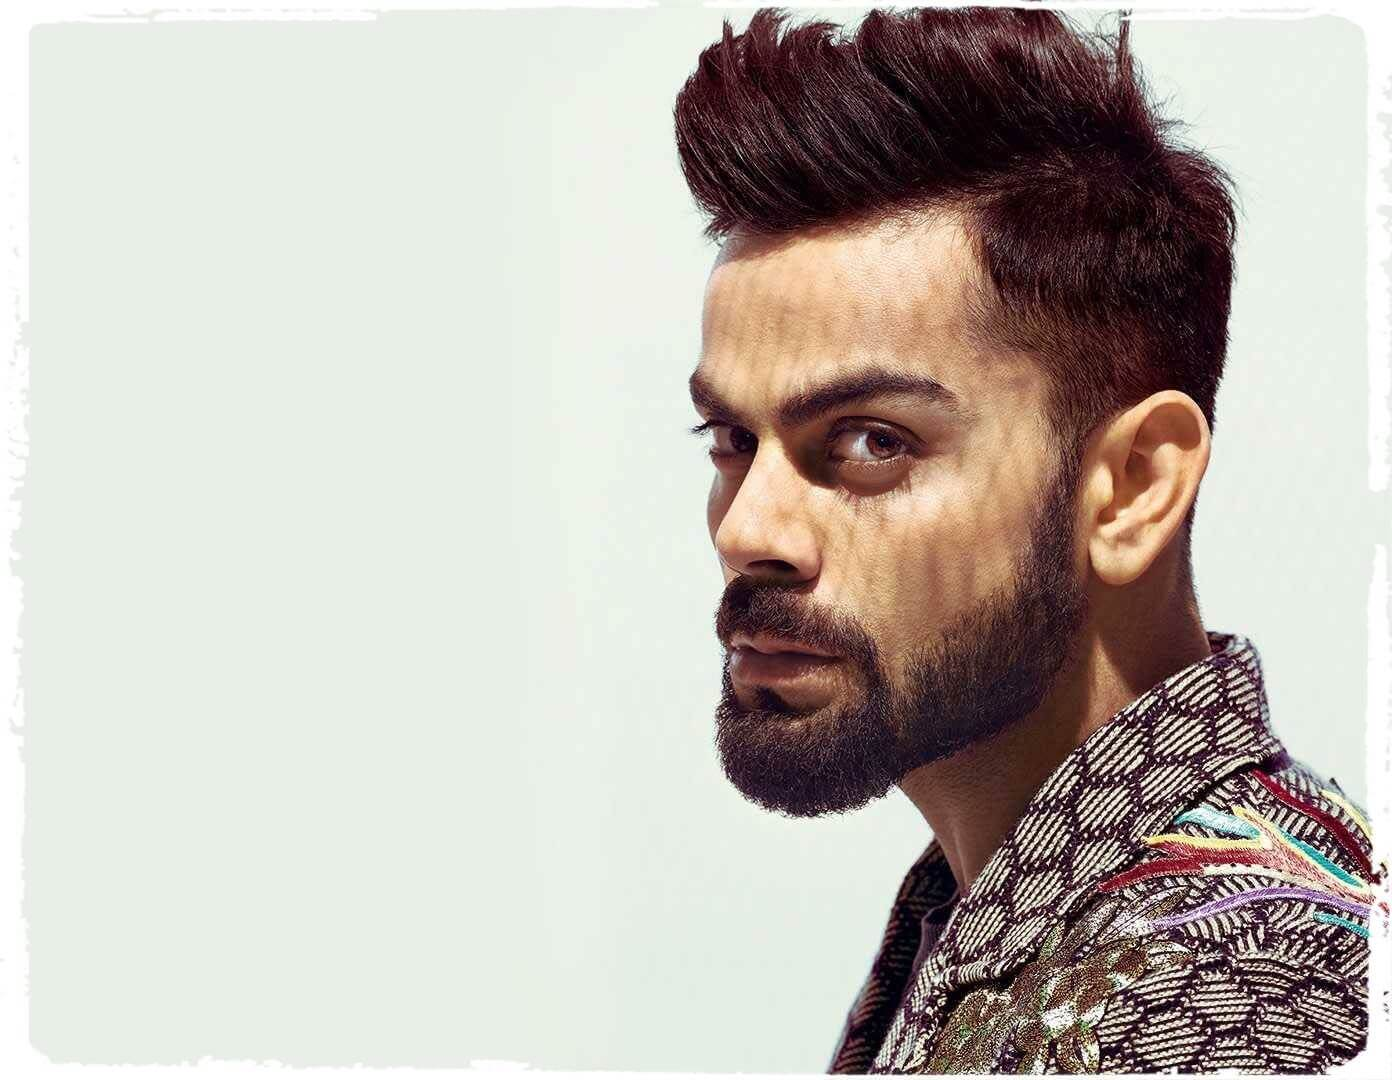 richest cricketers in the world 2021-virat kohli in beard